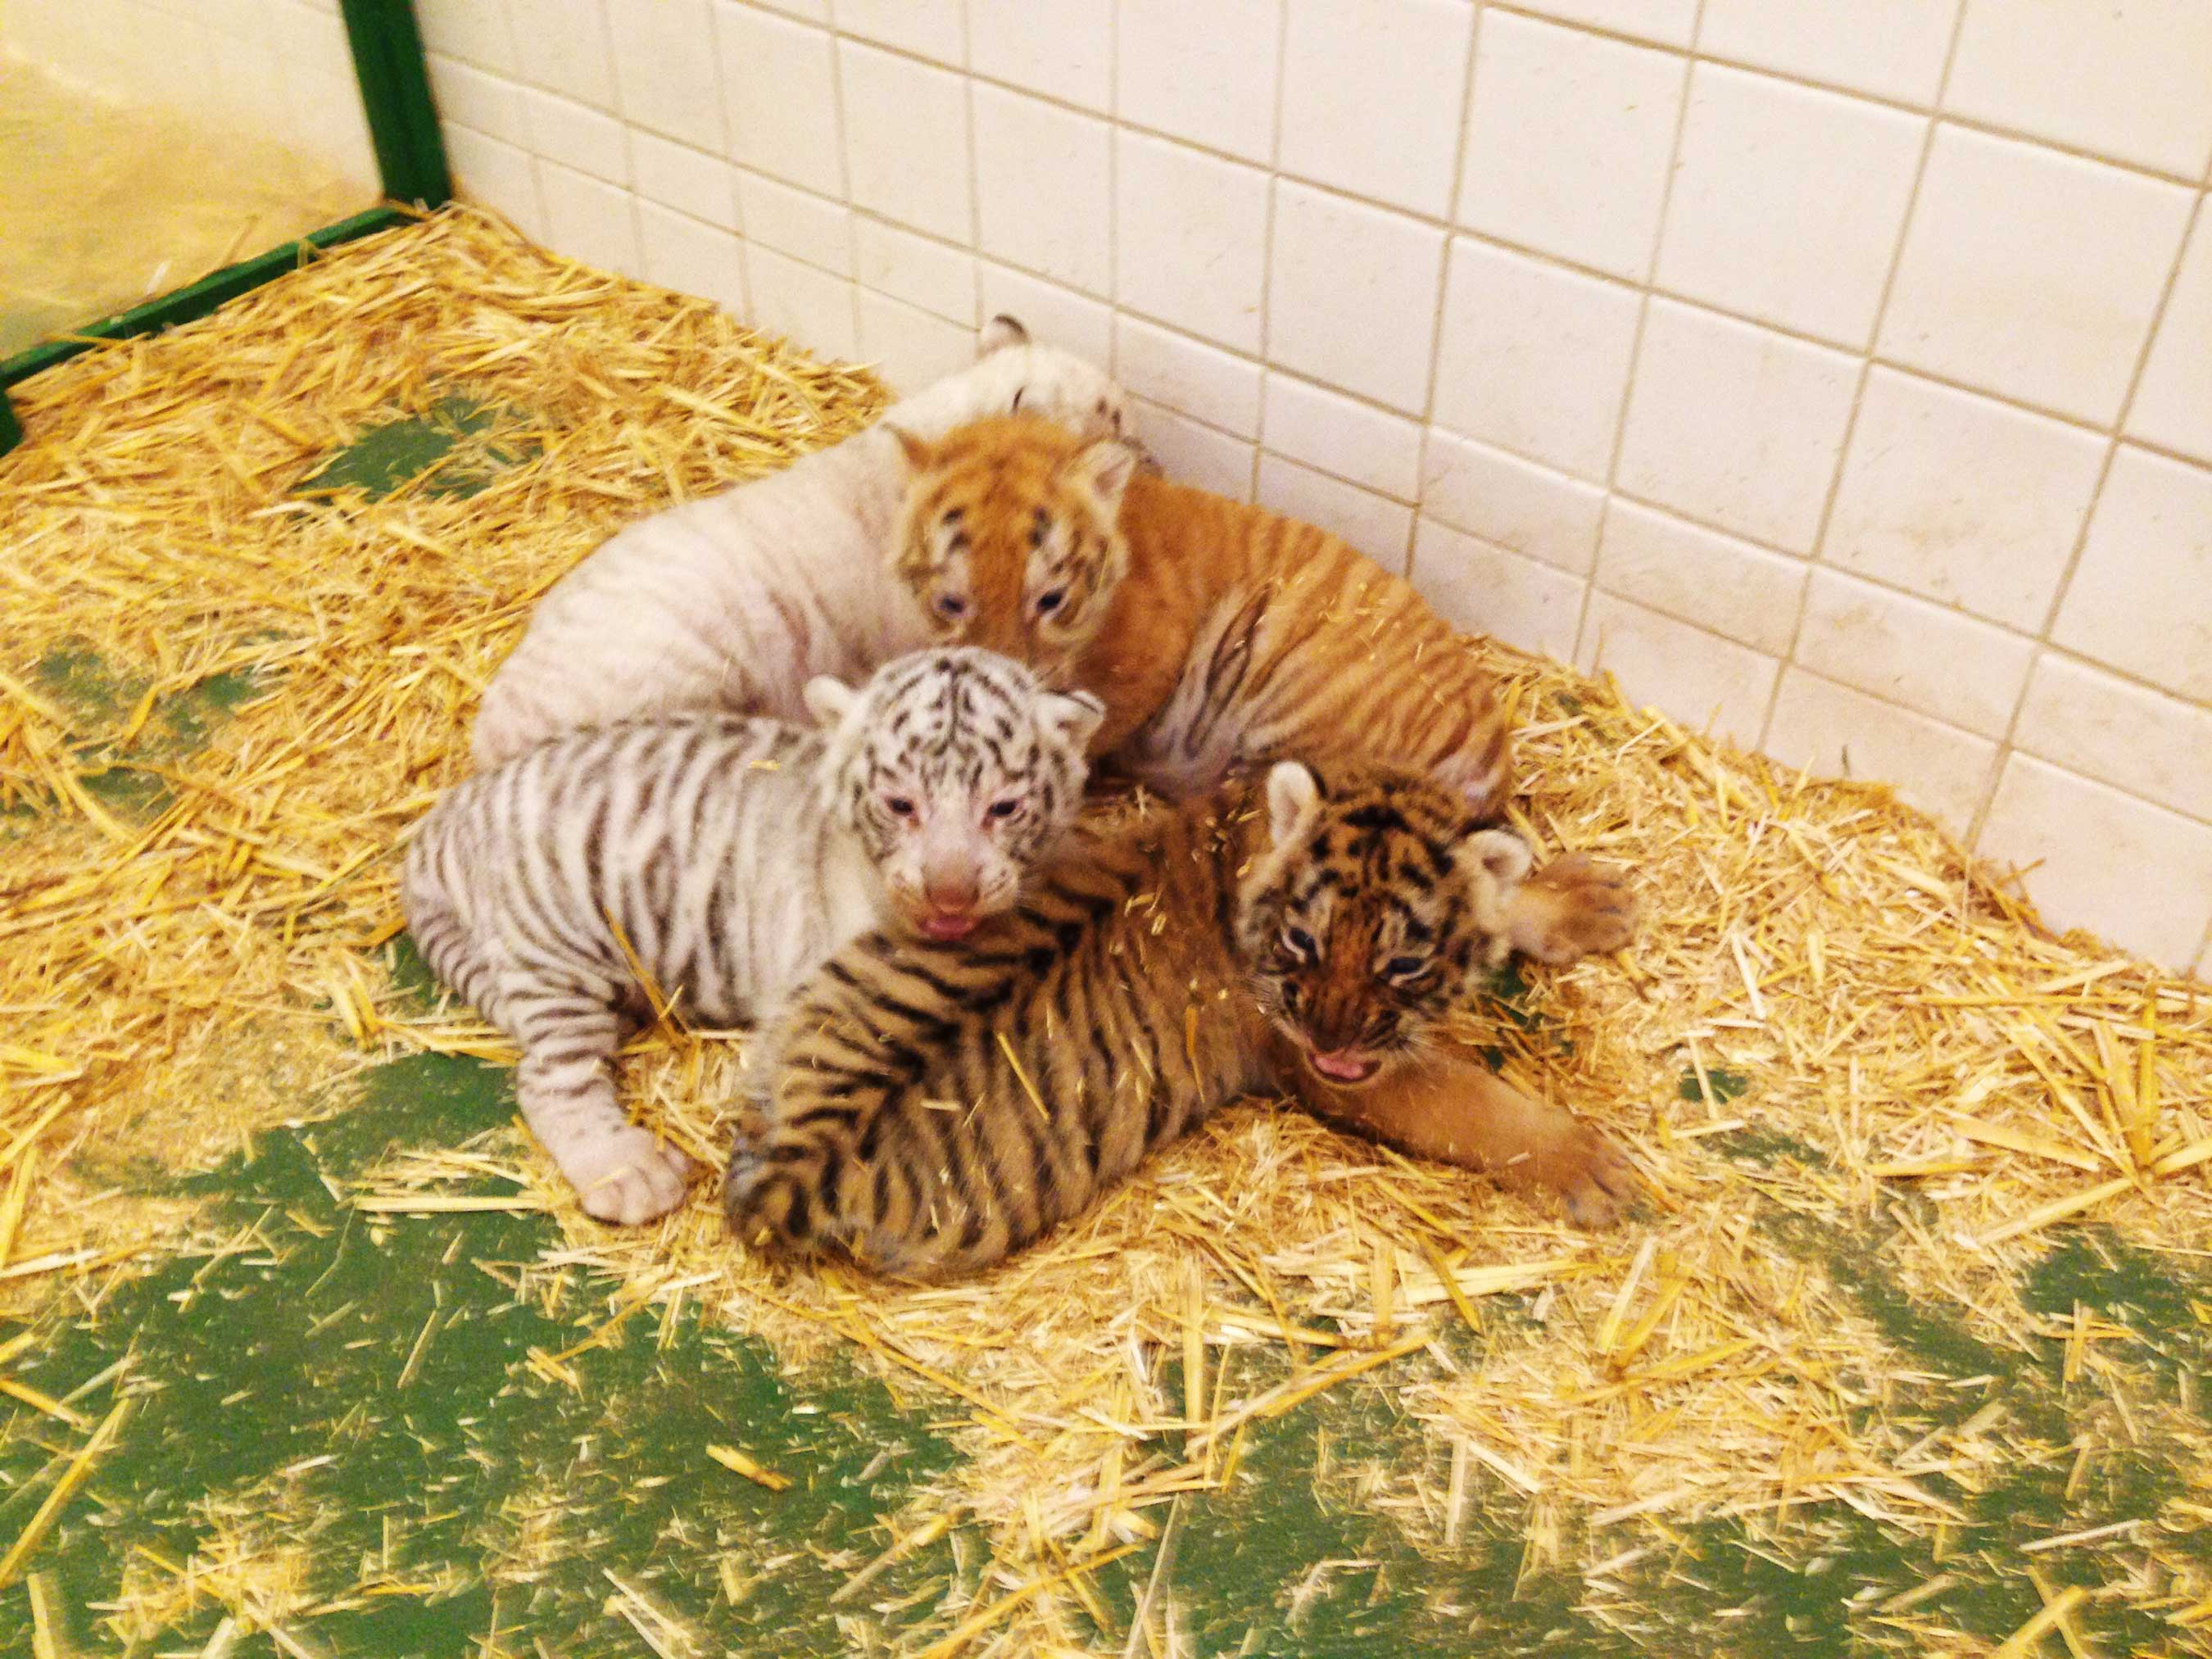 The @SARMOTIcubs are the first tiger cubs to be introduced at Siegfried & Roy's Secret Garden and Dolphin Habitat at The Mirage in five years